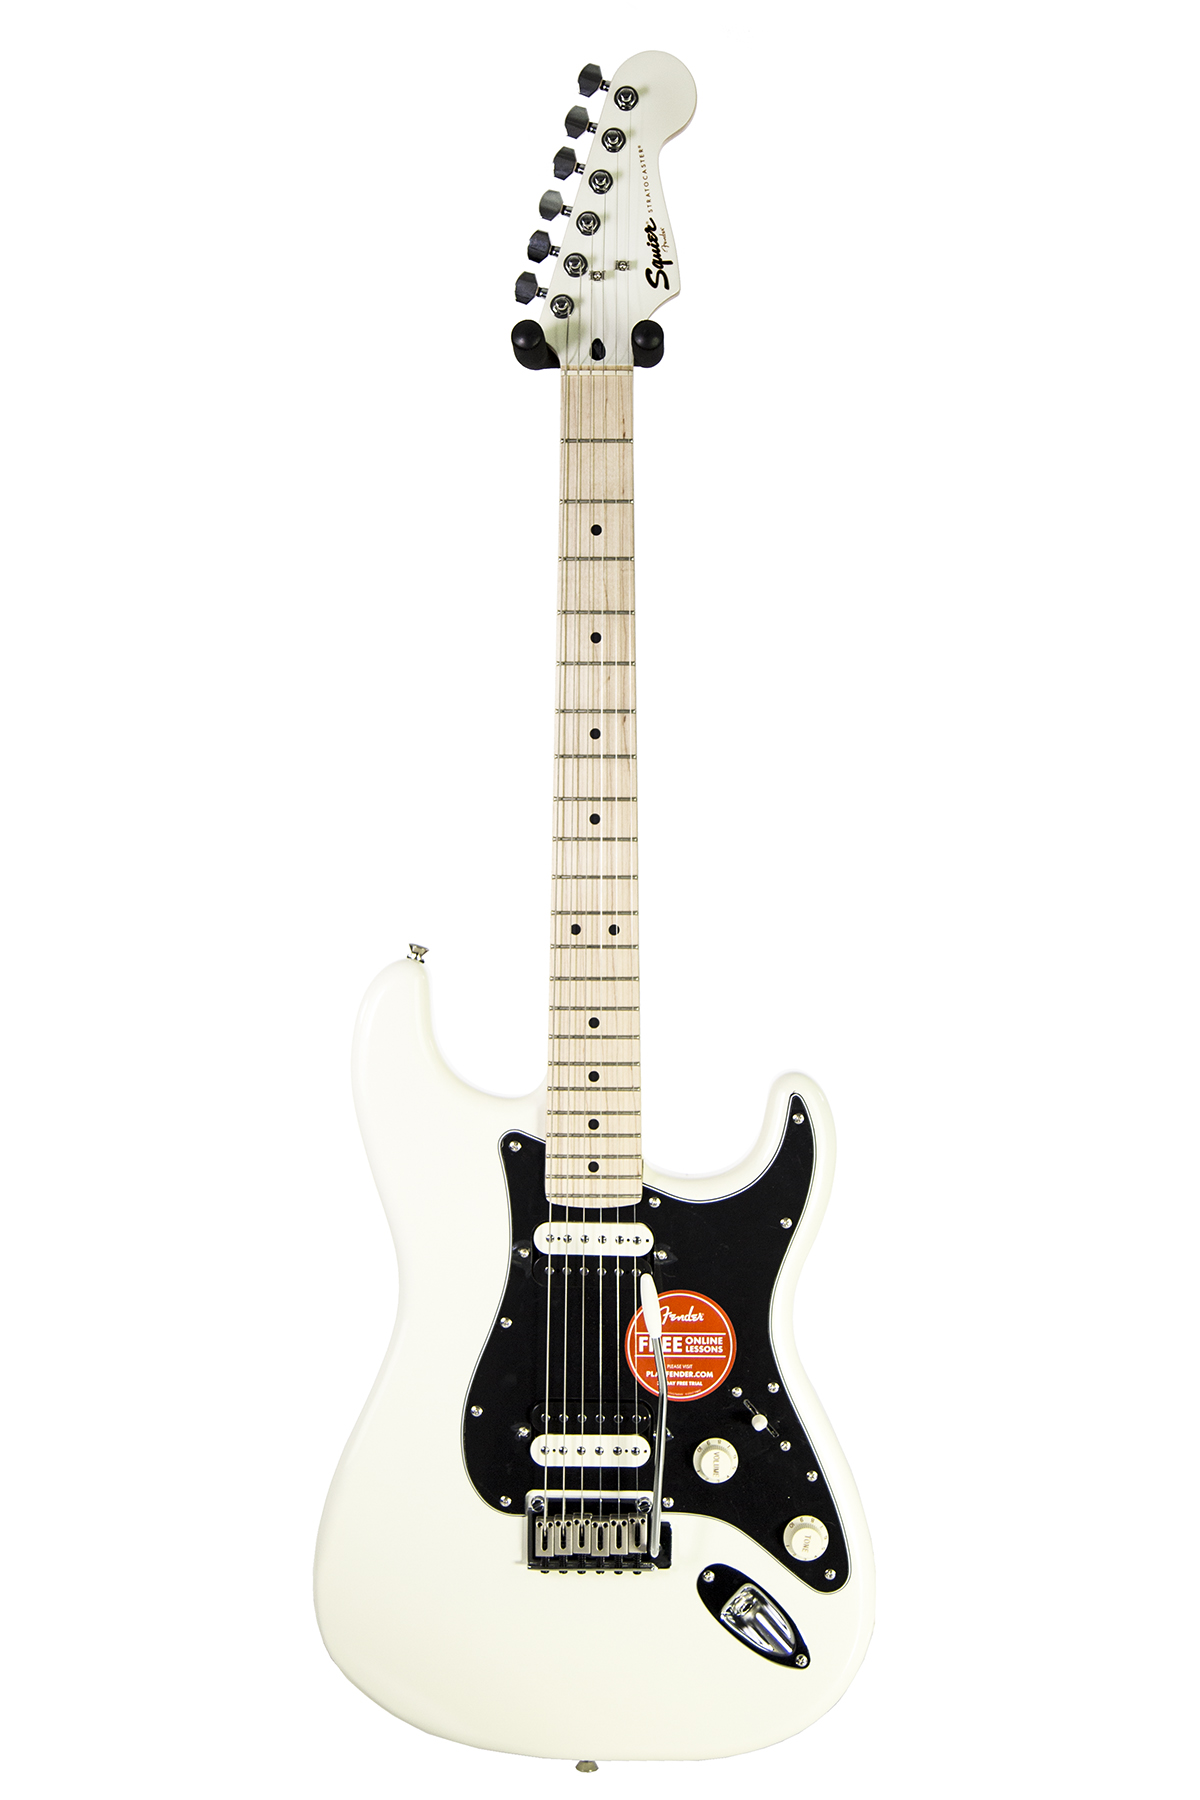 brand new fender squier contemporary stratocaster hh pearl white electric guitar new york. Black Bedroom Furniture Sets. Home Design Ideas